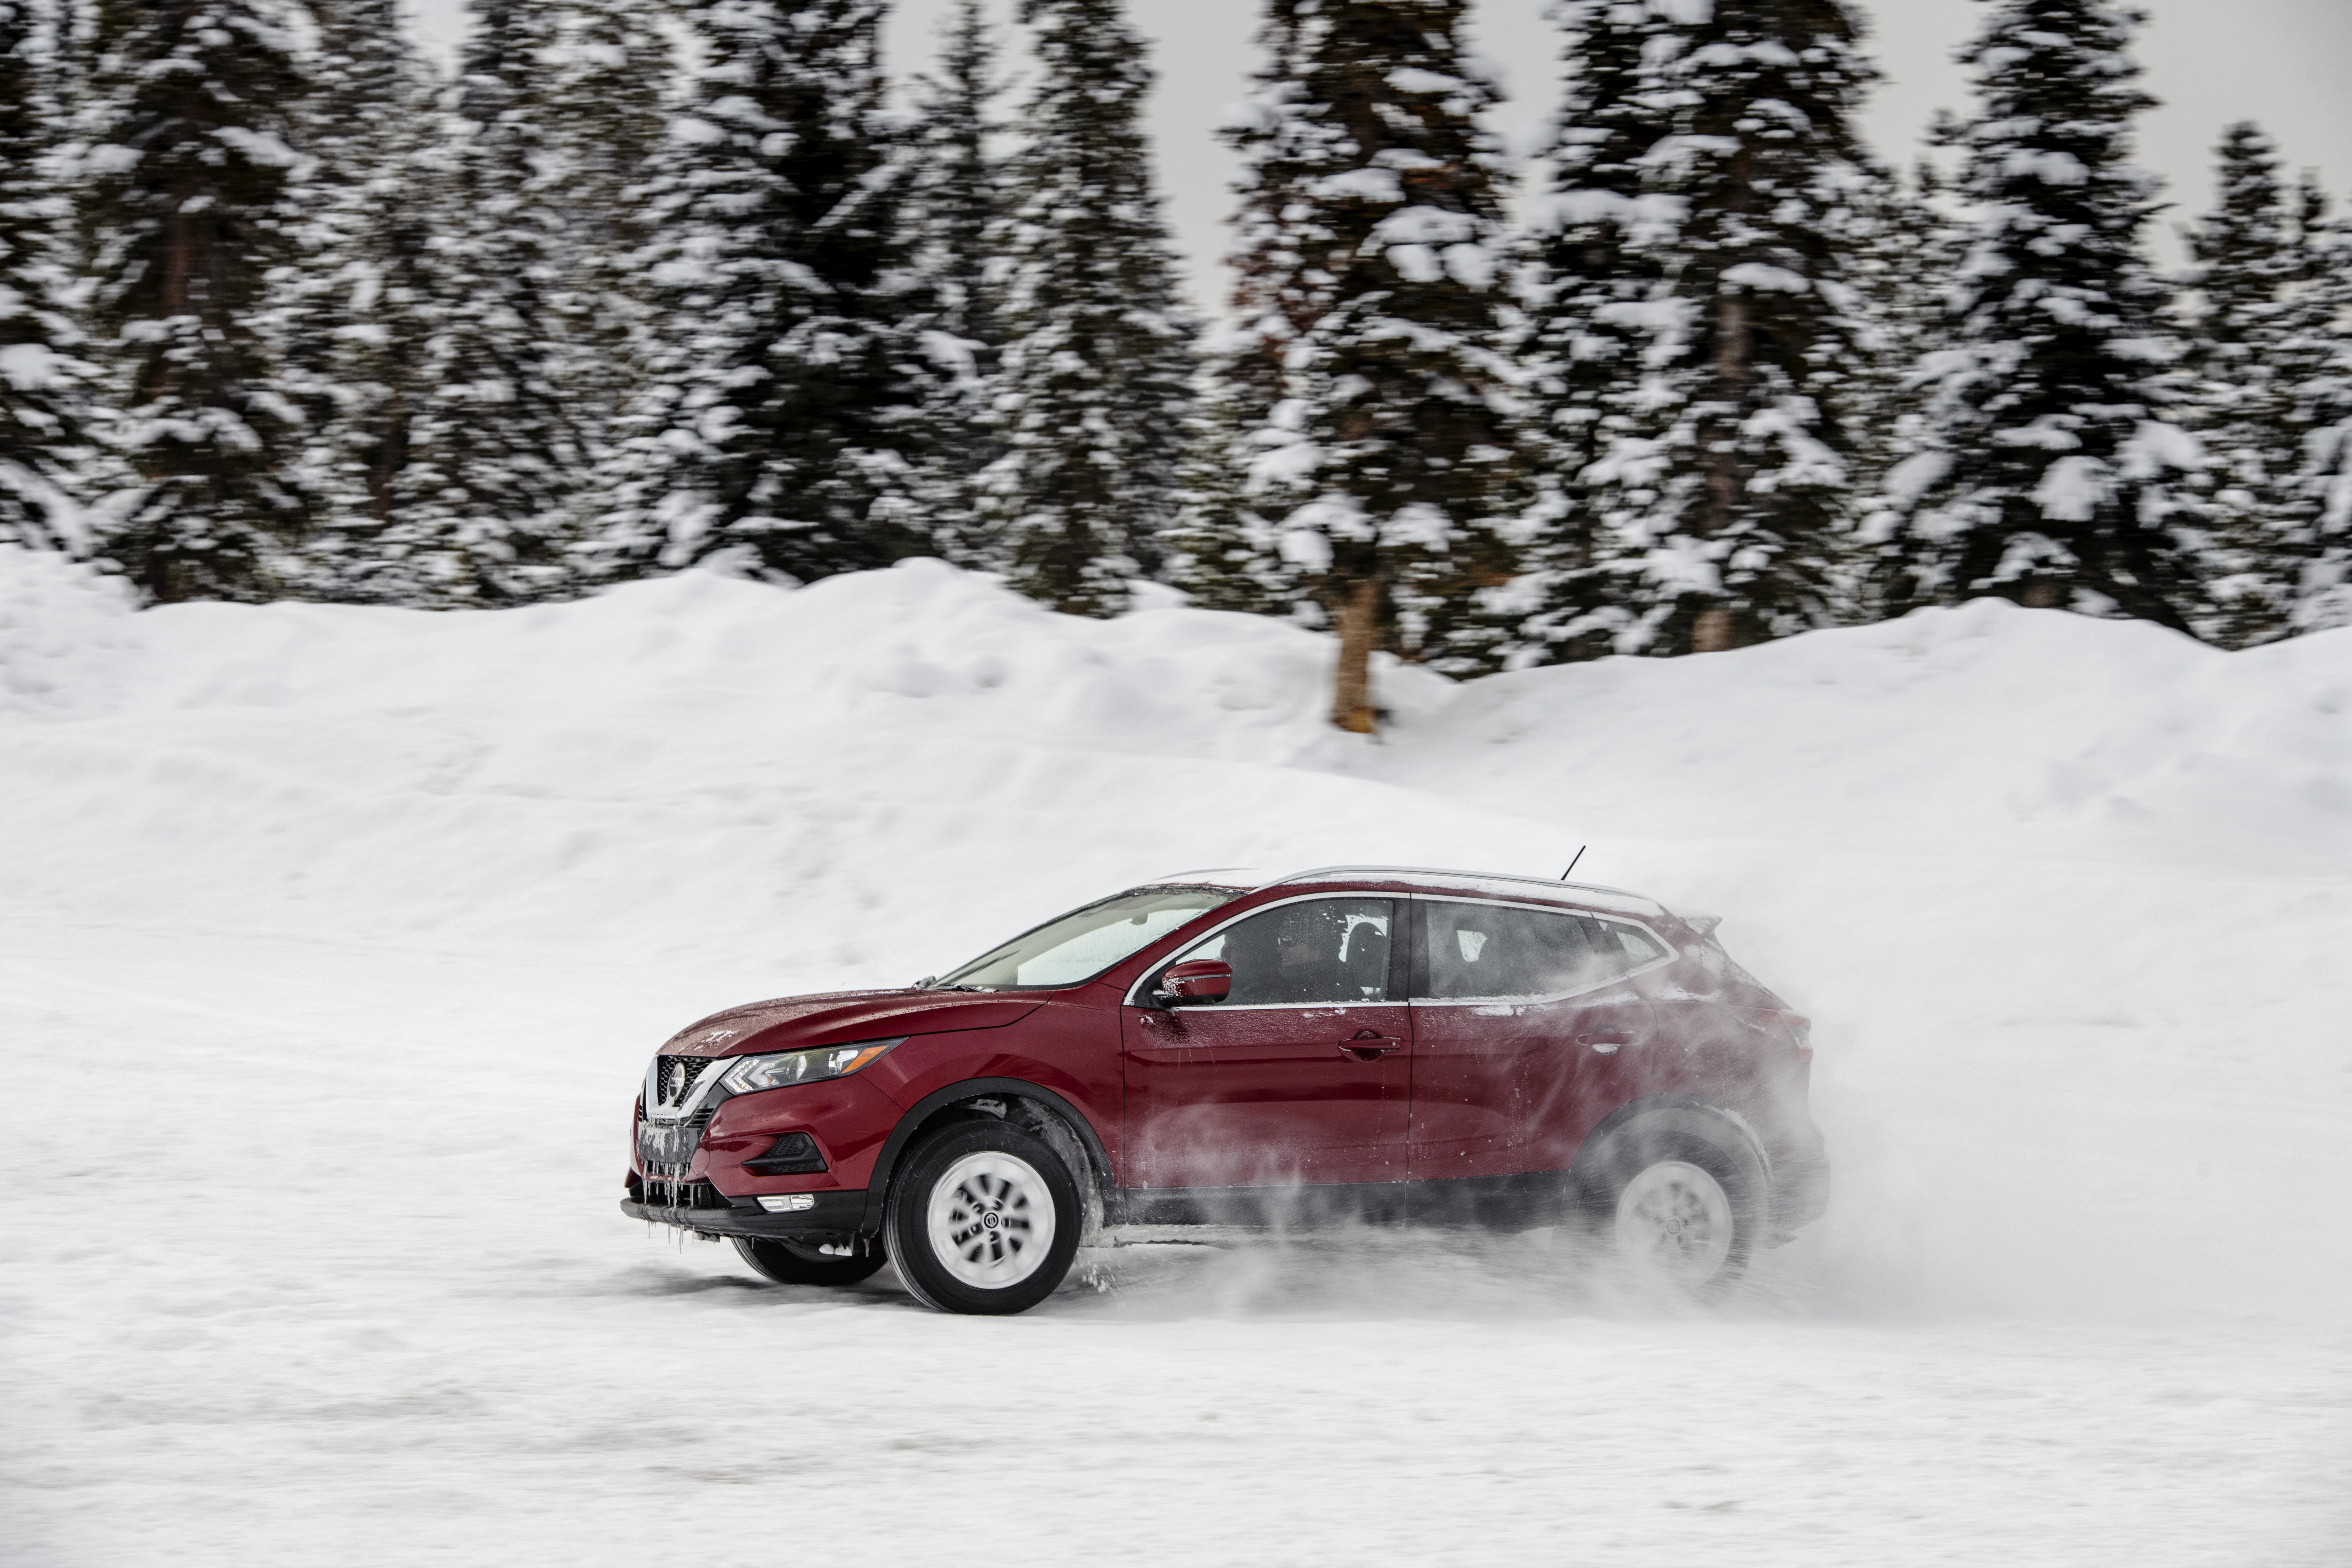 Slipping and sliding on purpose is one thing, but doing so when it's not intended can be disastrous in an automobile and the Redline Ice event showed us what safety systems do for that